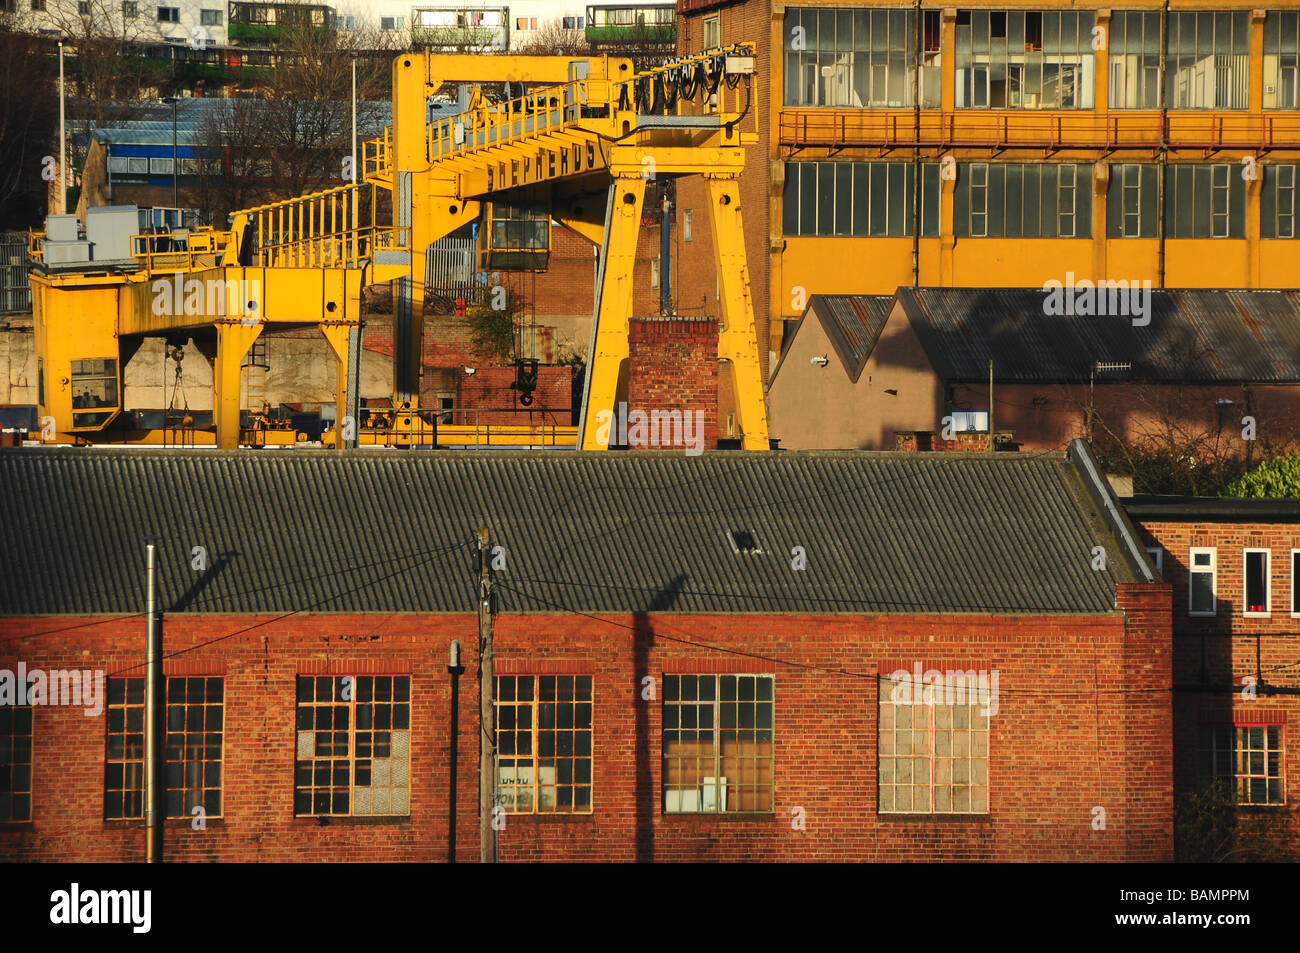 Factories and metalworks in industrial area of Newcastle-upon-Tyne, England - Stock Image